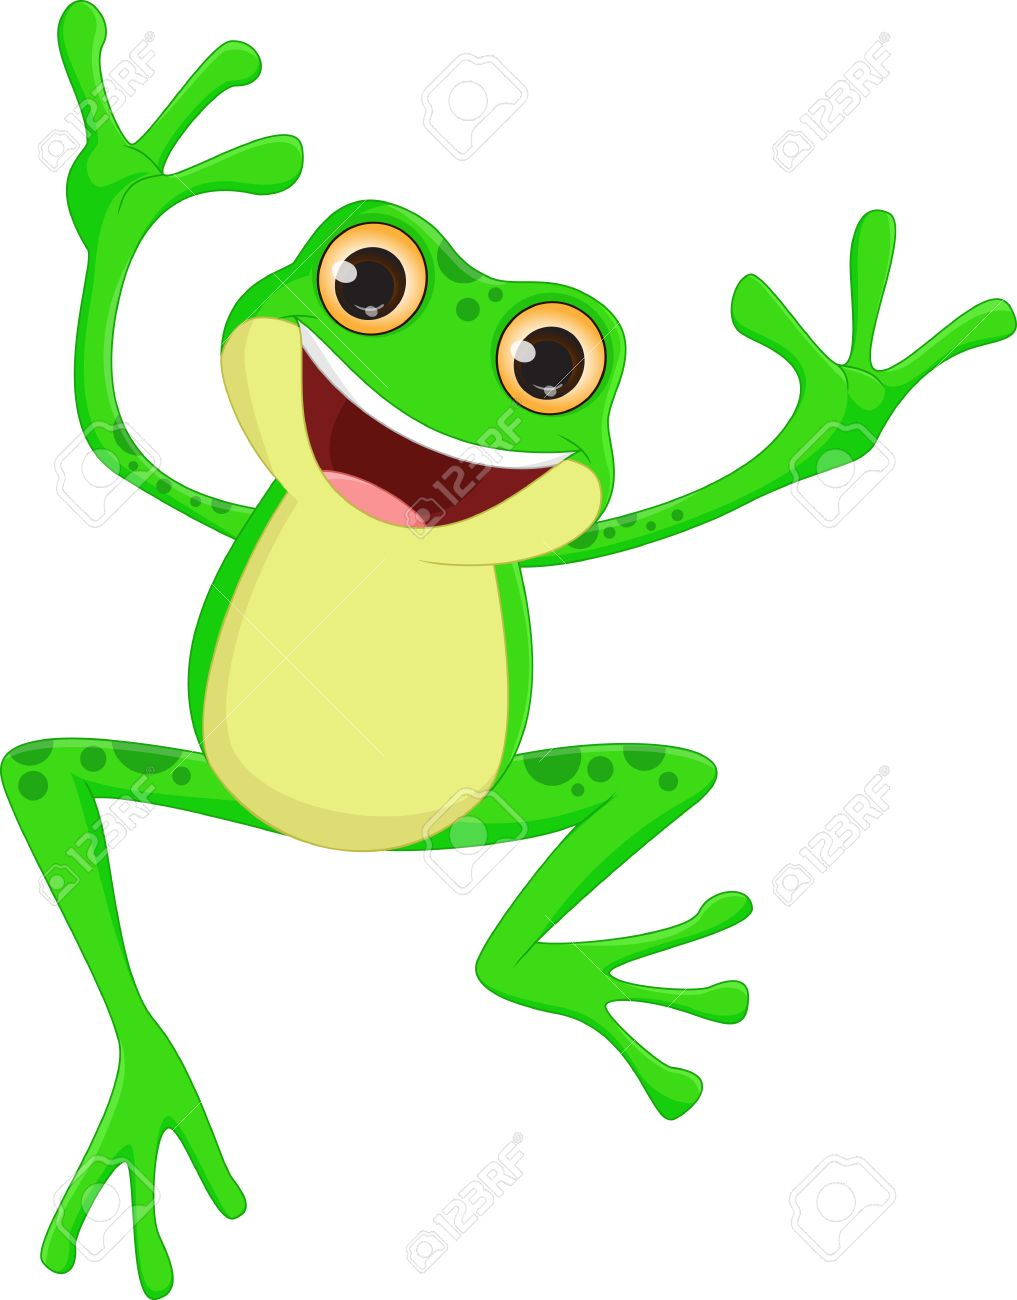 happy frog cartoon jumping royalty free cliparts vectors and stock rh 123rf com Group Hopping Frogs All Frogs